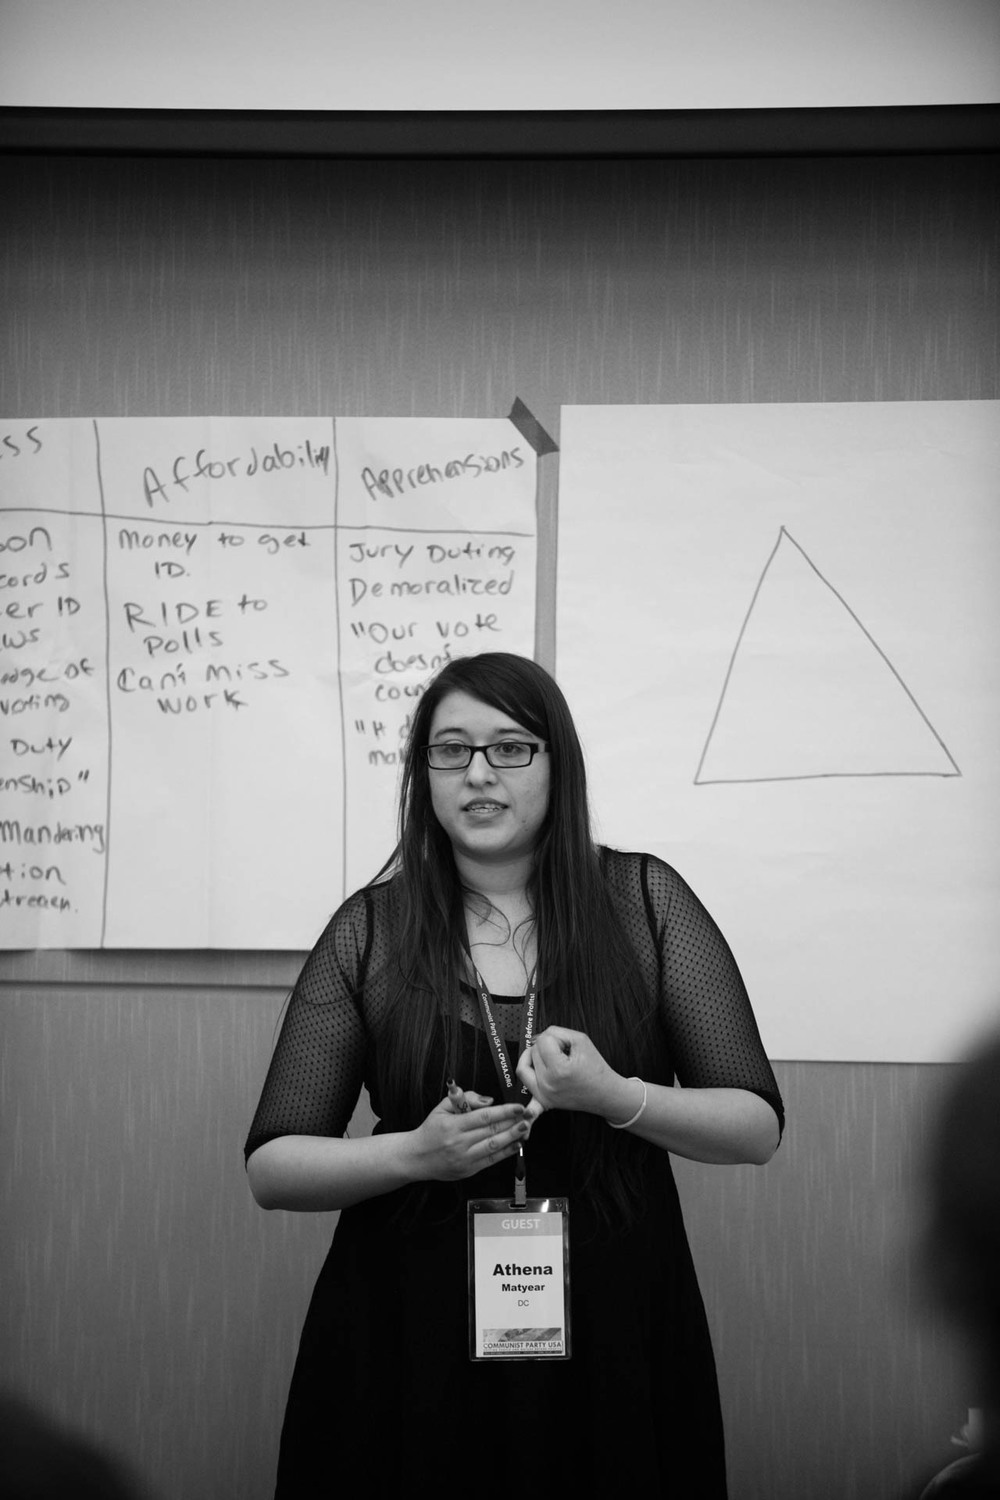 Athena Matyear was teaching a mini workshop on how the very low income voters in U.S. are systematicallt suppressed and how to help them